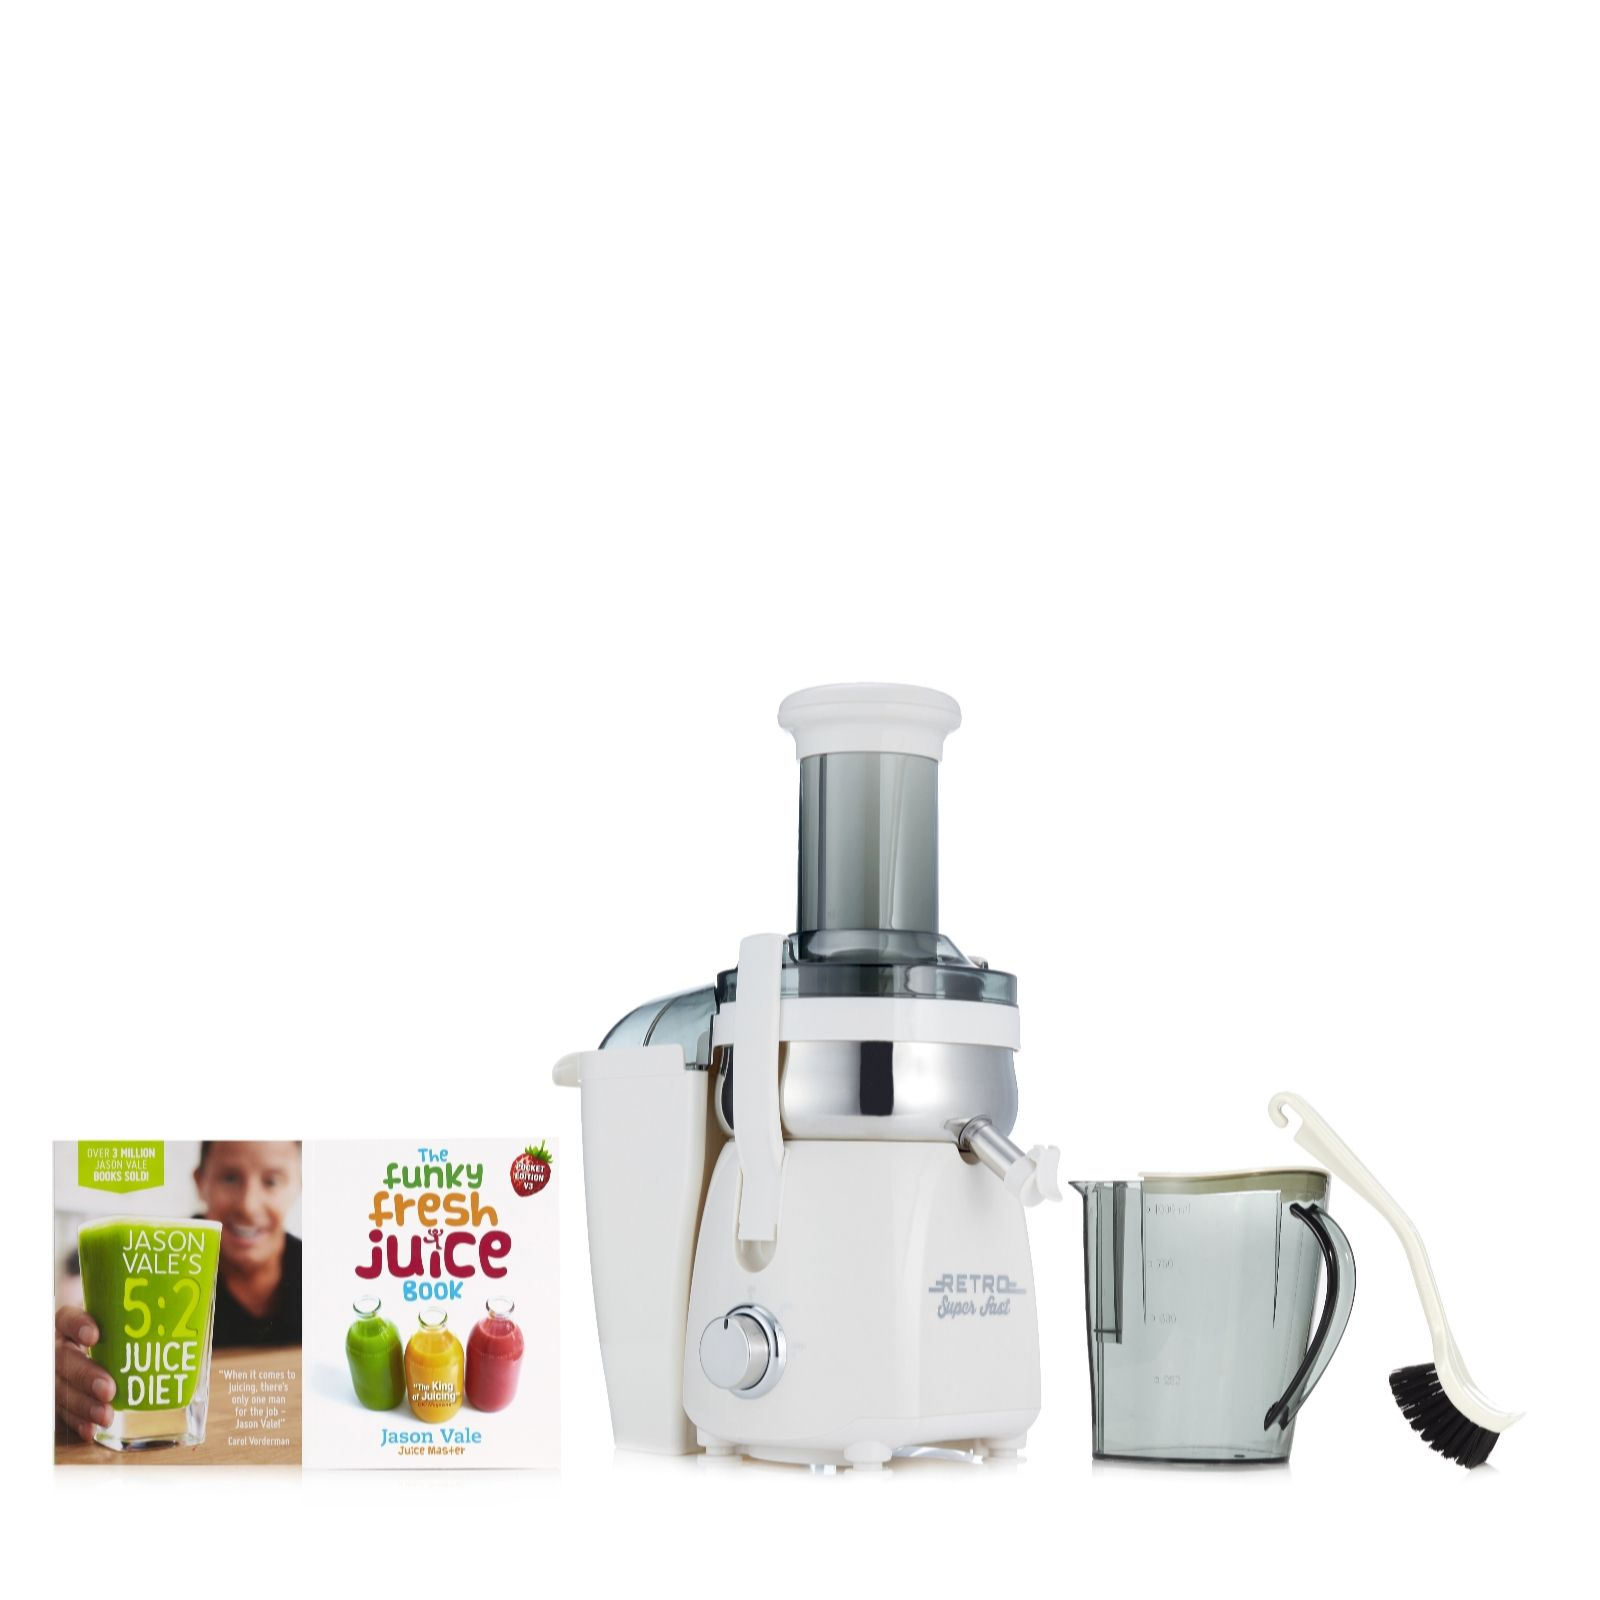 Jason Vale Retro Fast Juicer with 5:2 Juice Diet & The Funky Fresh ...